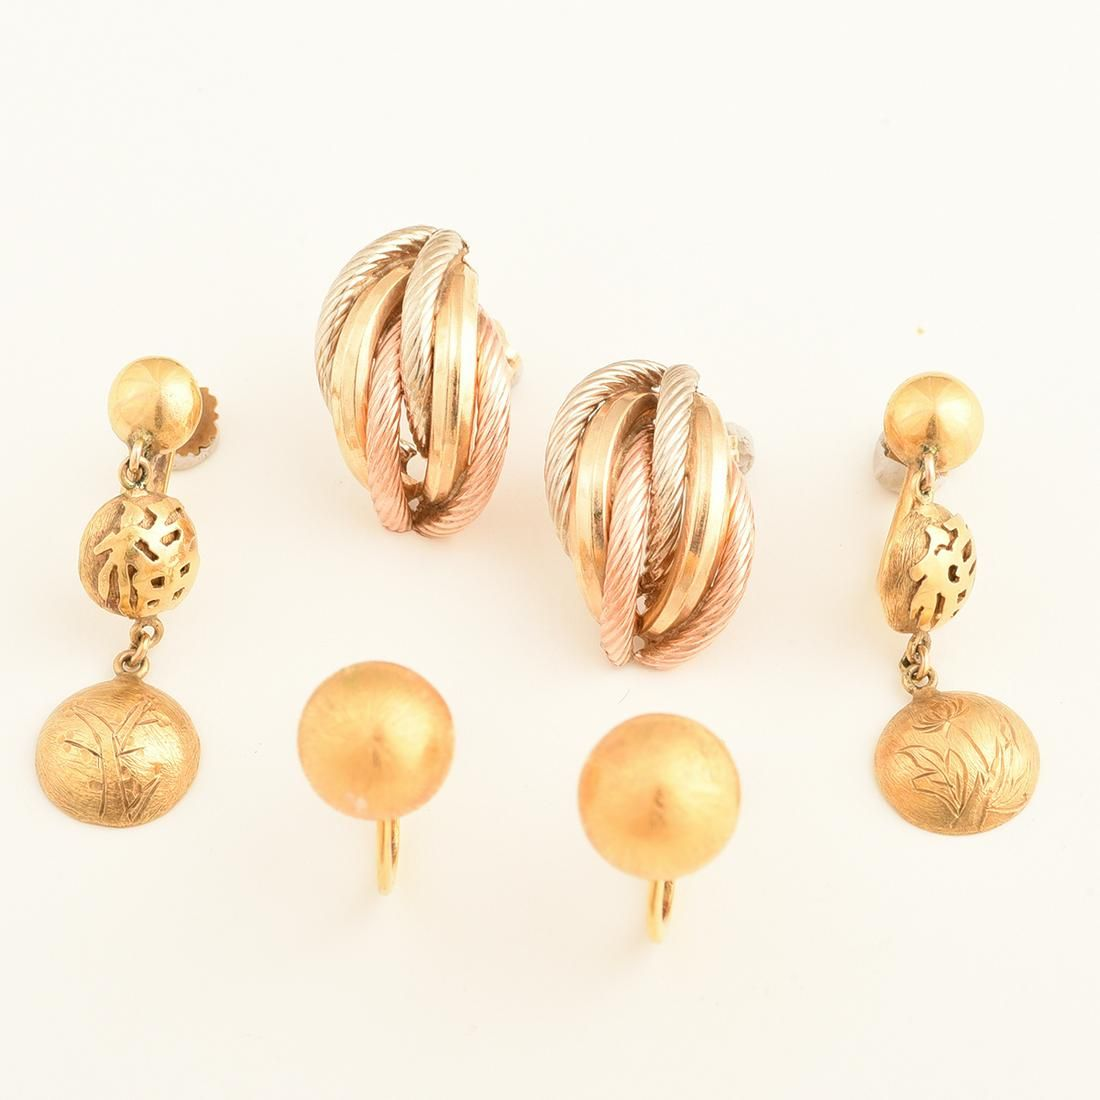 Collection of Three Pairs of 14k Gold Earrings.